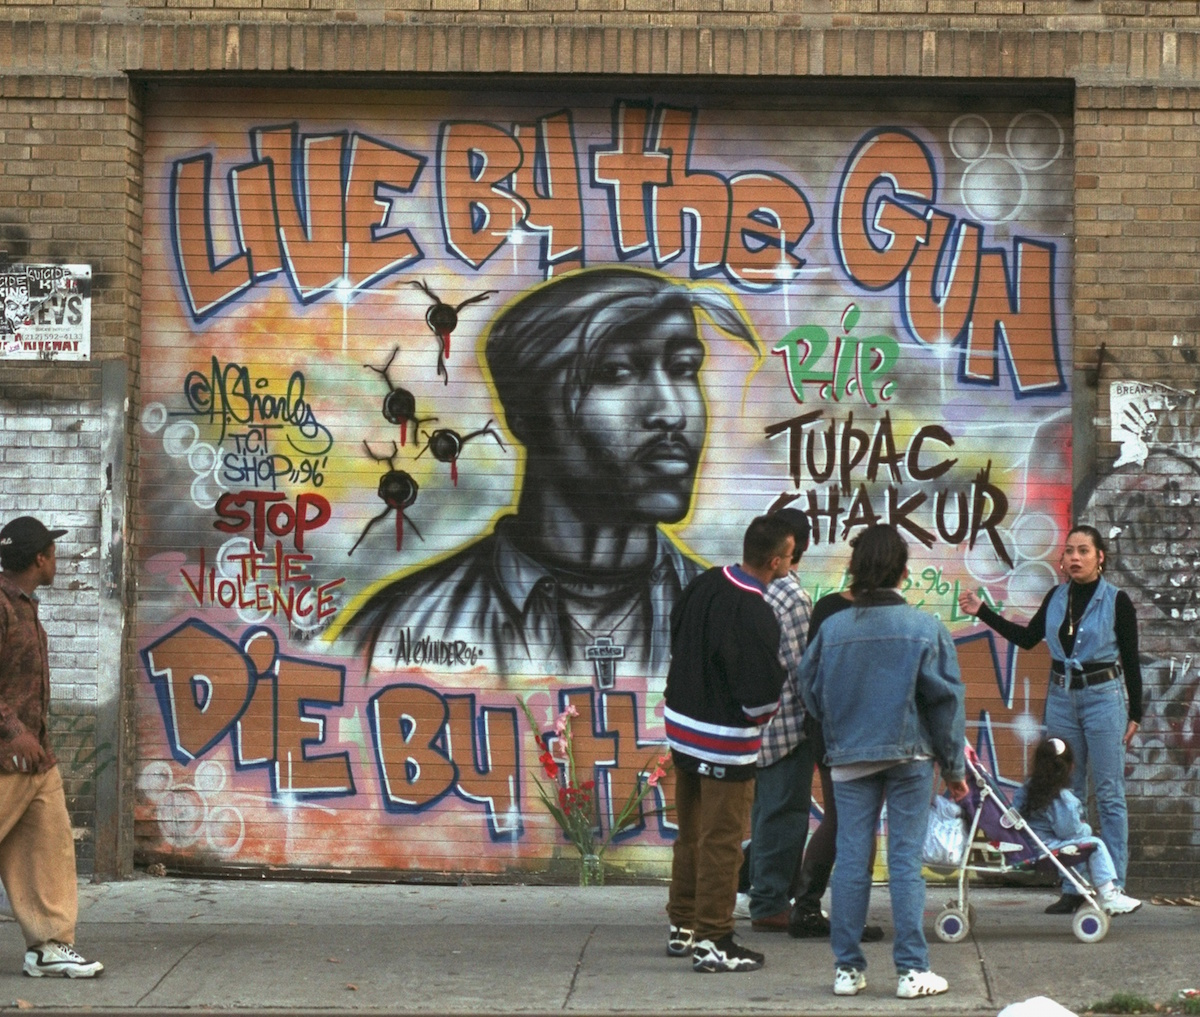 A memorial to the late Tupac Shakur on the Lower East Side of New York City in September of 1996